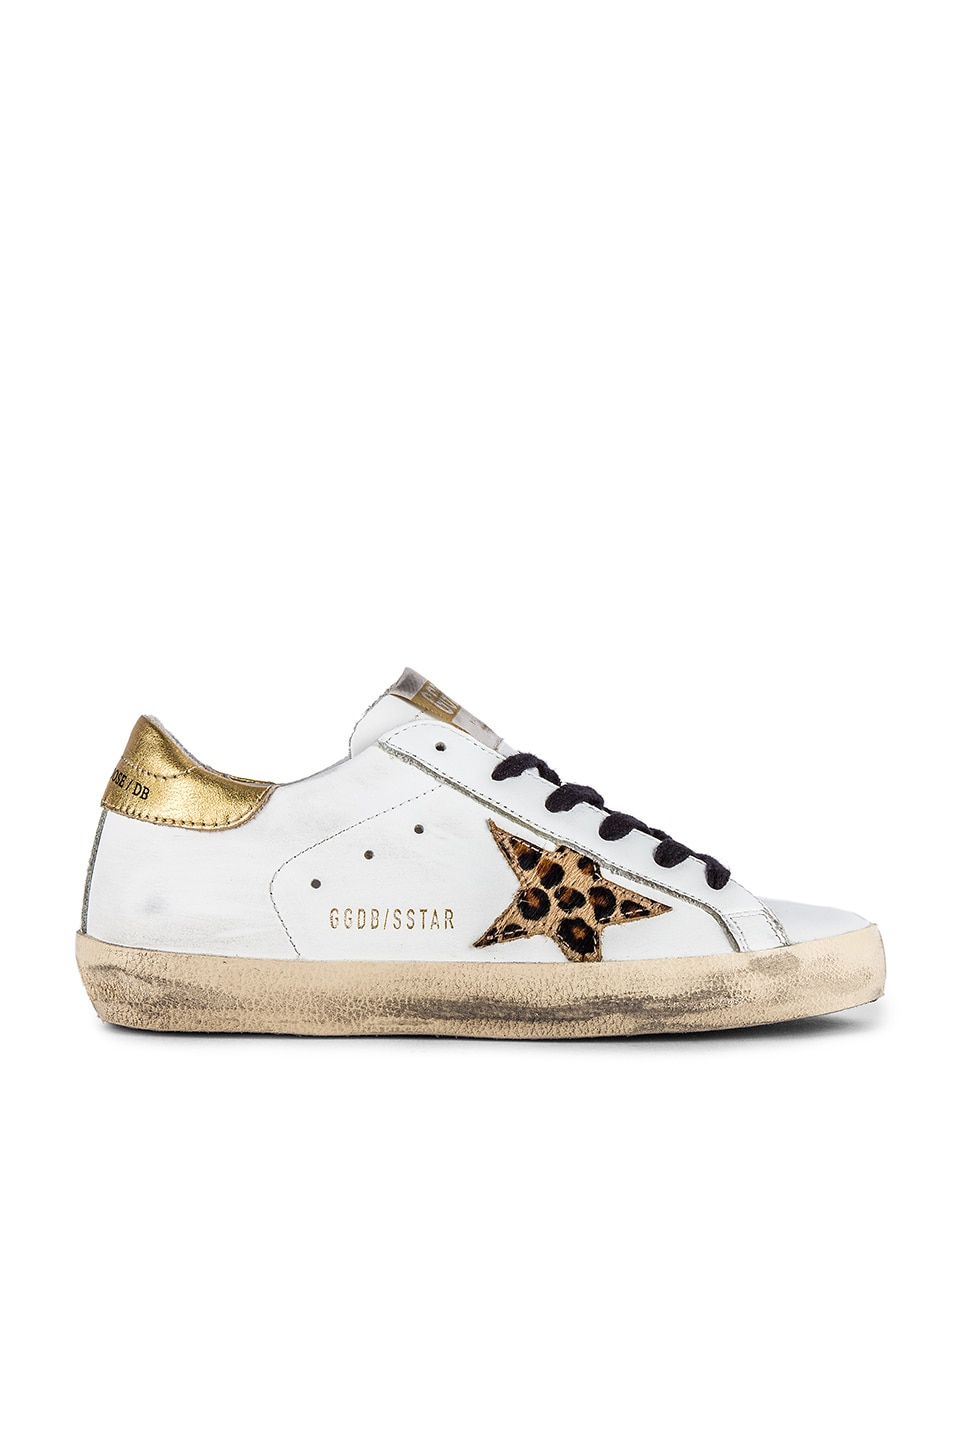 Golden Goose Superstar Sneaker in White Leather, Gold & Leopard